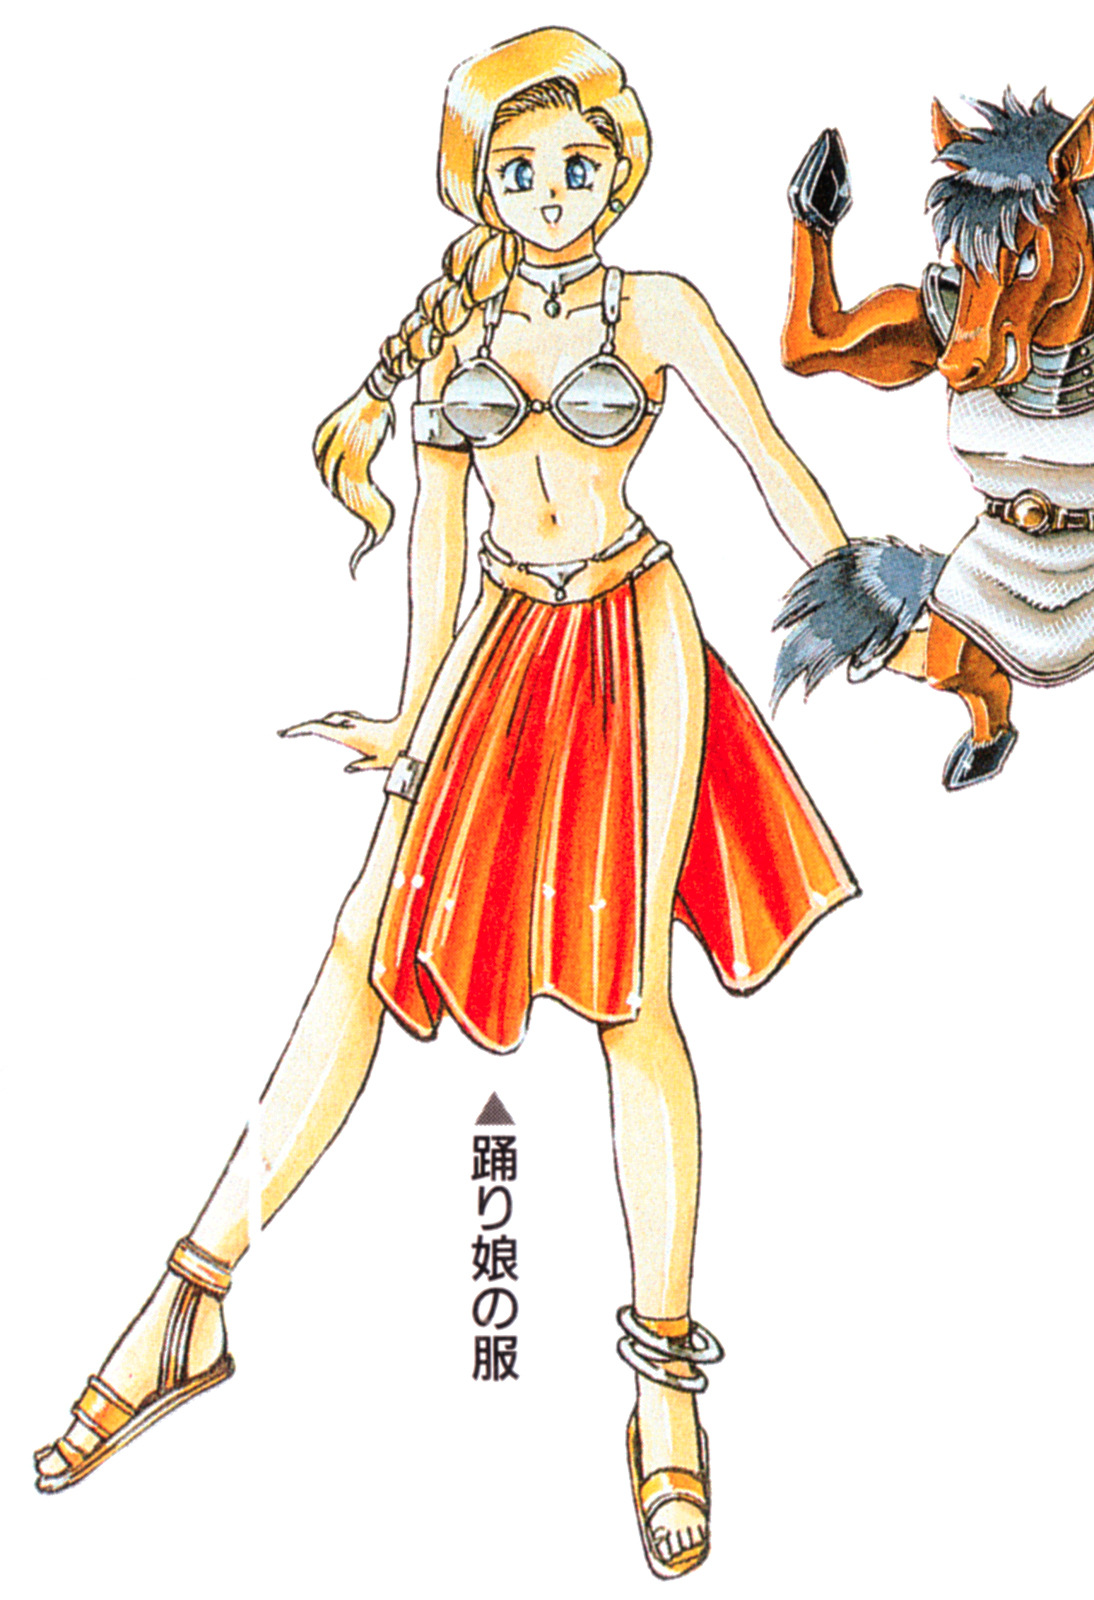 Dragon_Quest5_Bianca3_Dancers_Outfit.jpg